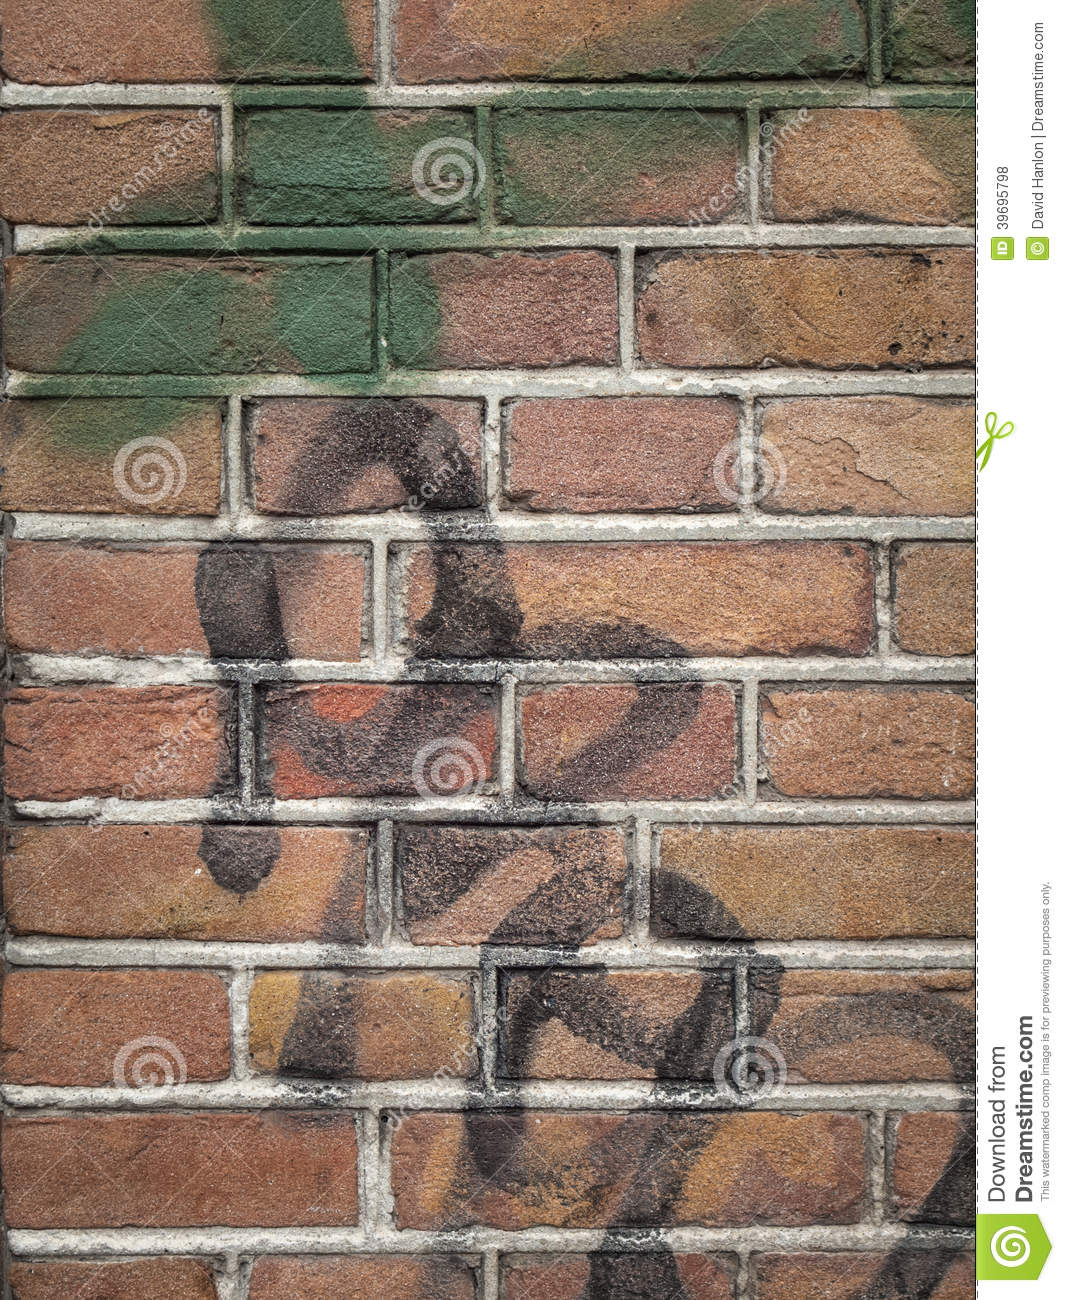 detail of red brick wall wth grey mortar and spray paint graffiti in. Black Bedroom Furniture Sets. Home Design Ideas